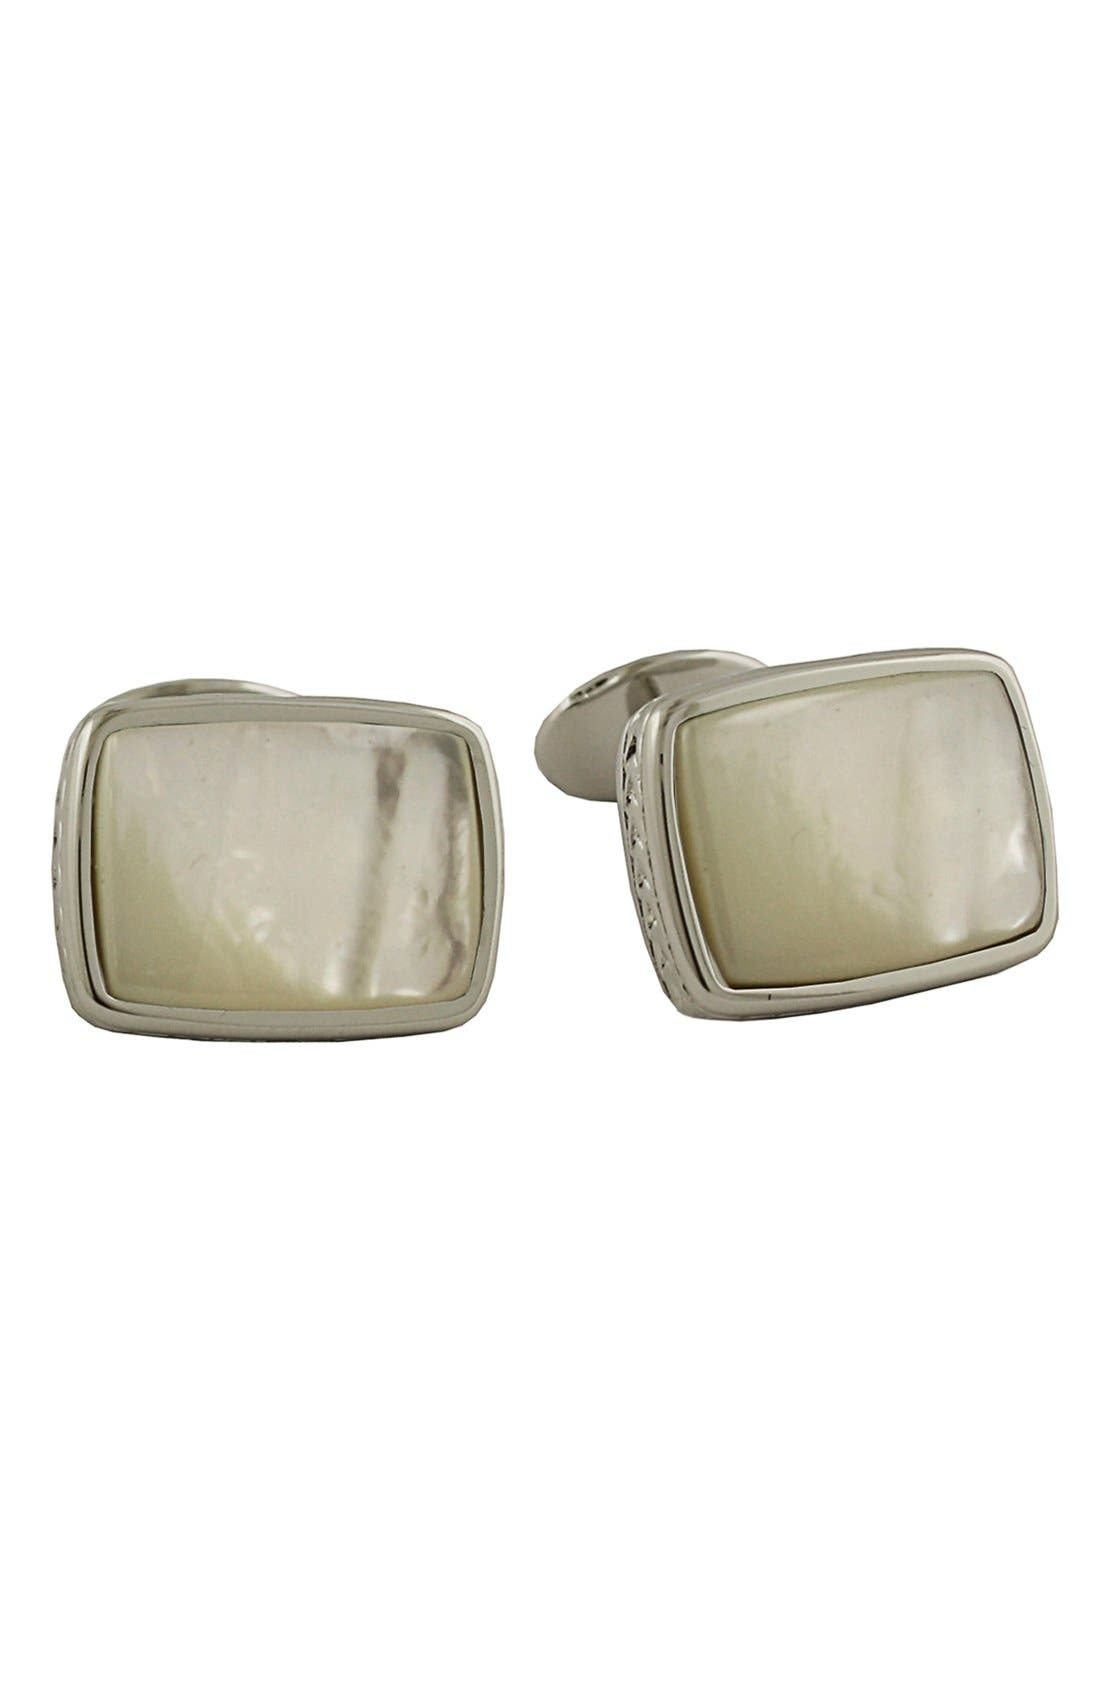 Sterling Silver Cuff Links,                             Main thumbnail 1, color,                             100